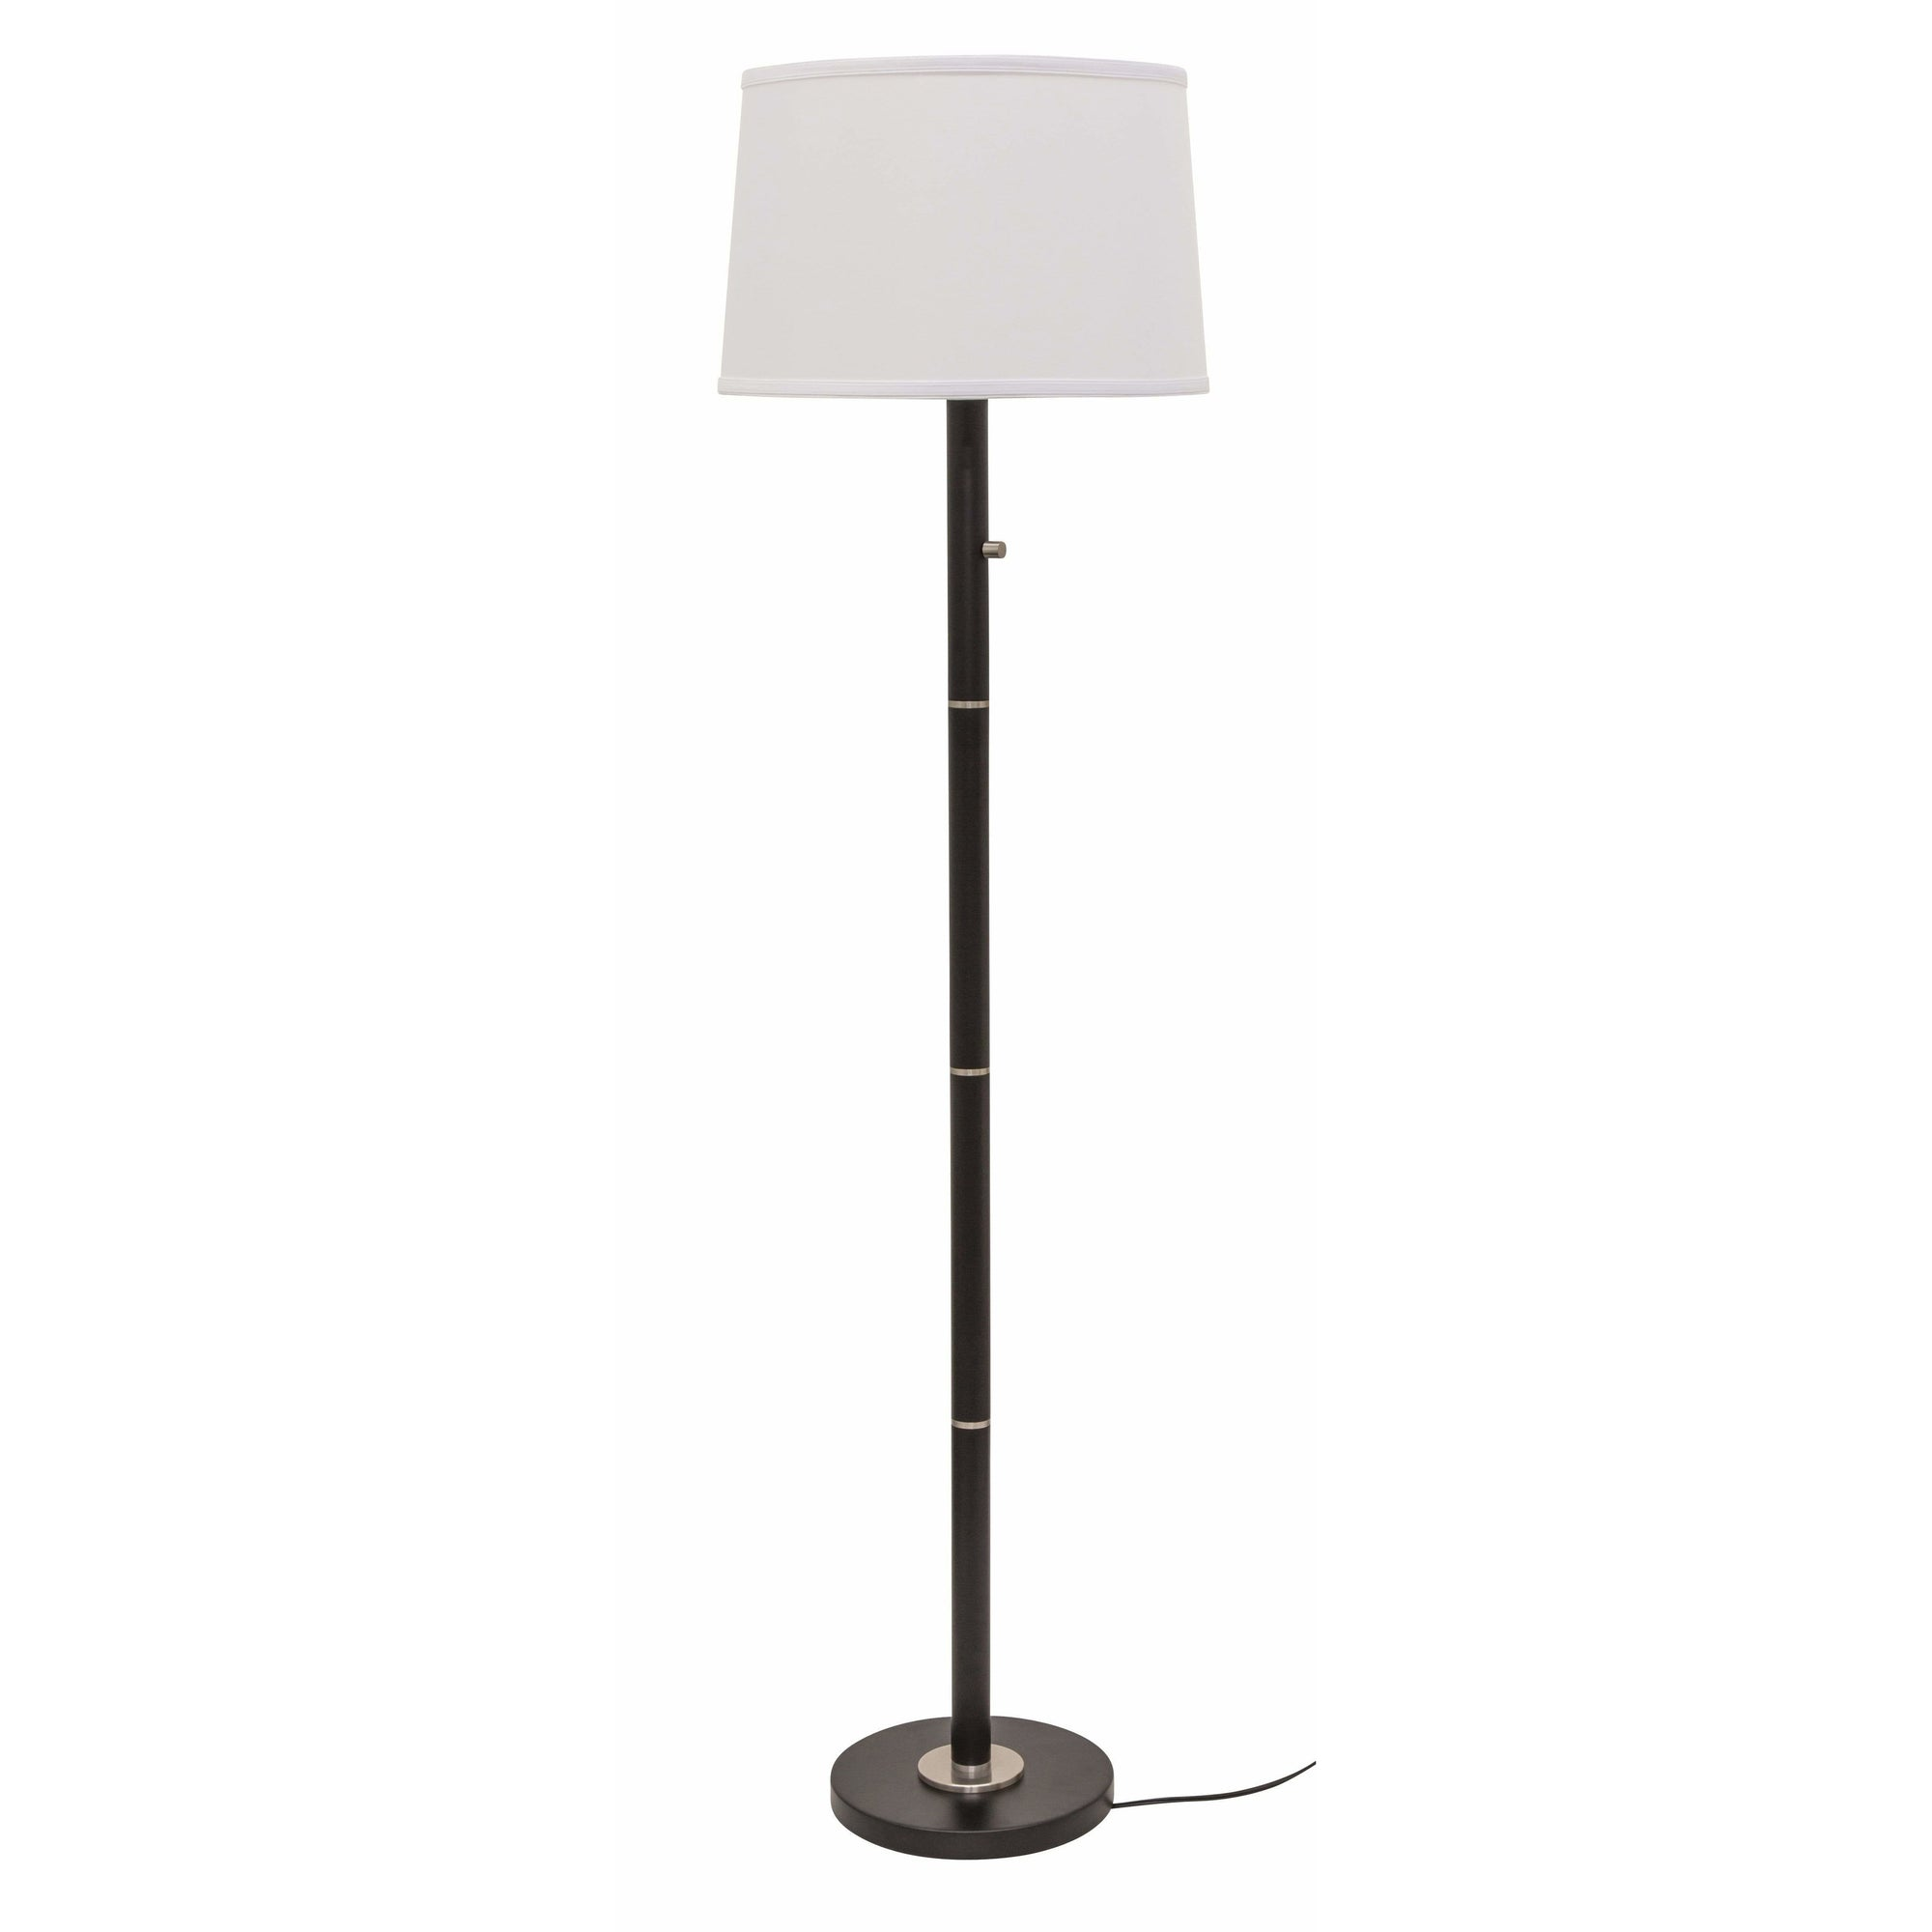 House Of Troy Floor Lamps Rupert Floor Lamp by House Of Troy RU703-BLK